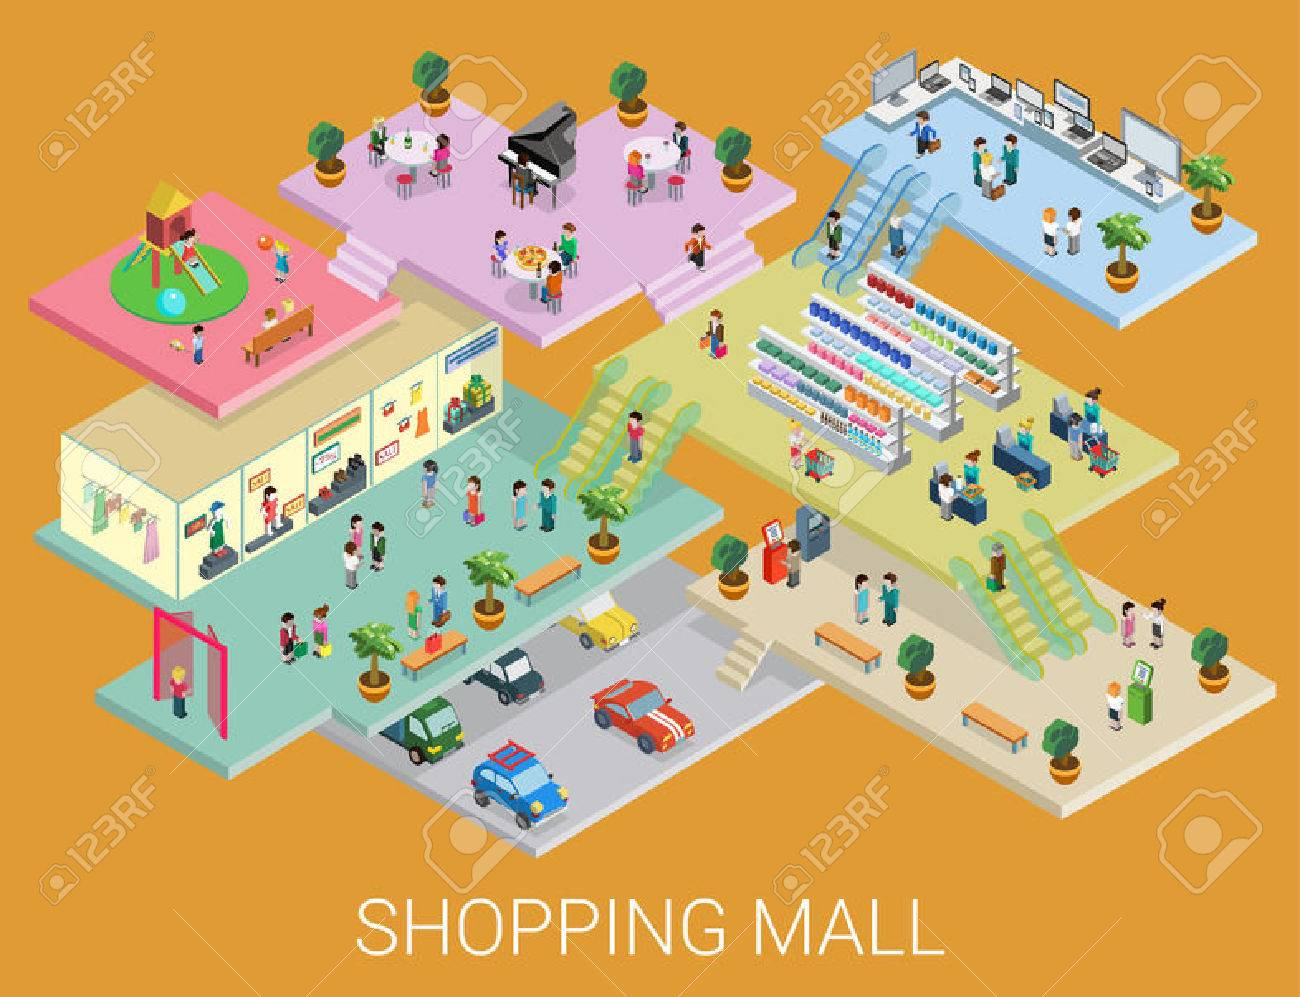 Flat 3d isometric shopping mall concept vector. City shopping center, boutique gallery indoor interior floors with walking shoppers. Sale, entertainment, multi-use, retail store business concept. - 48578572